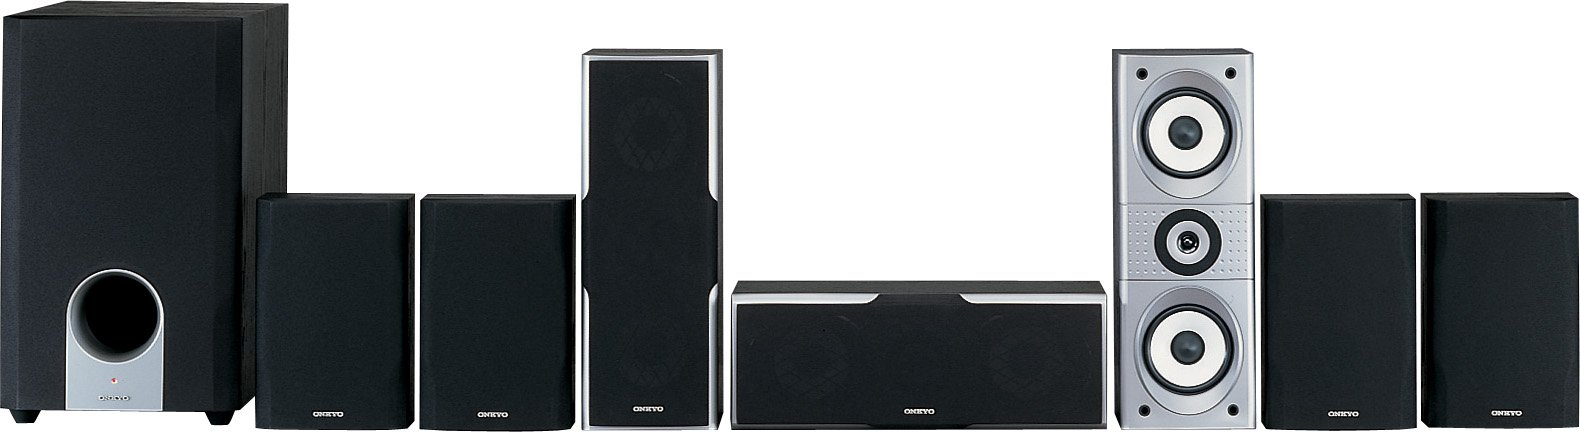 Onkyo SKS-HT540 7.1 Channel Home Theater Speaker System by Onkyo